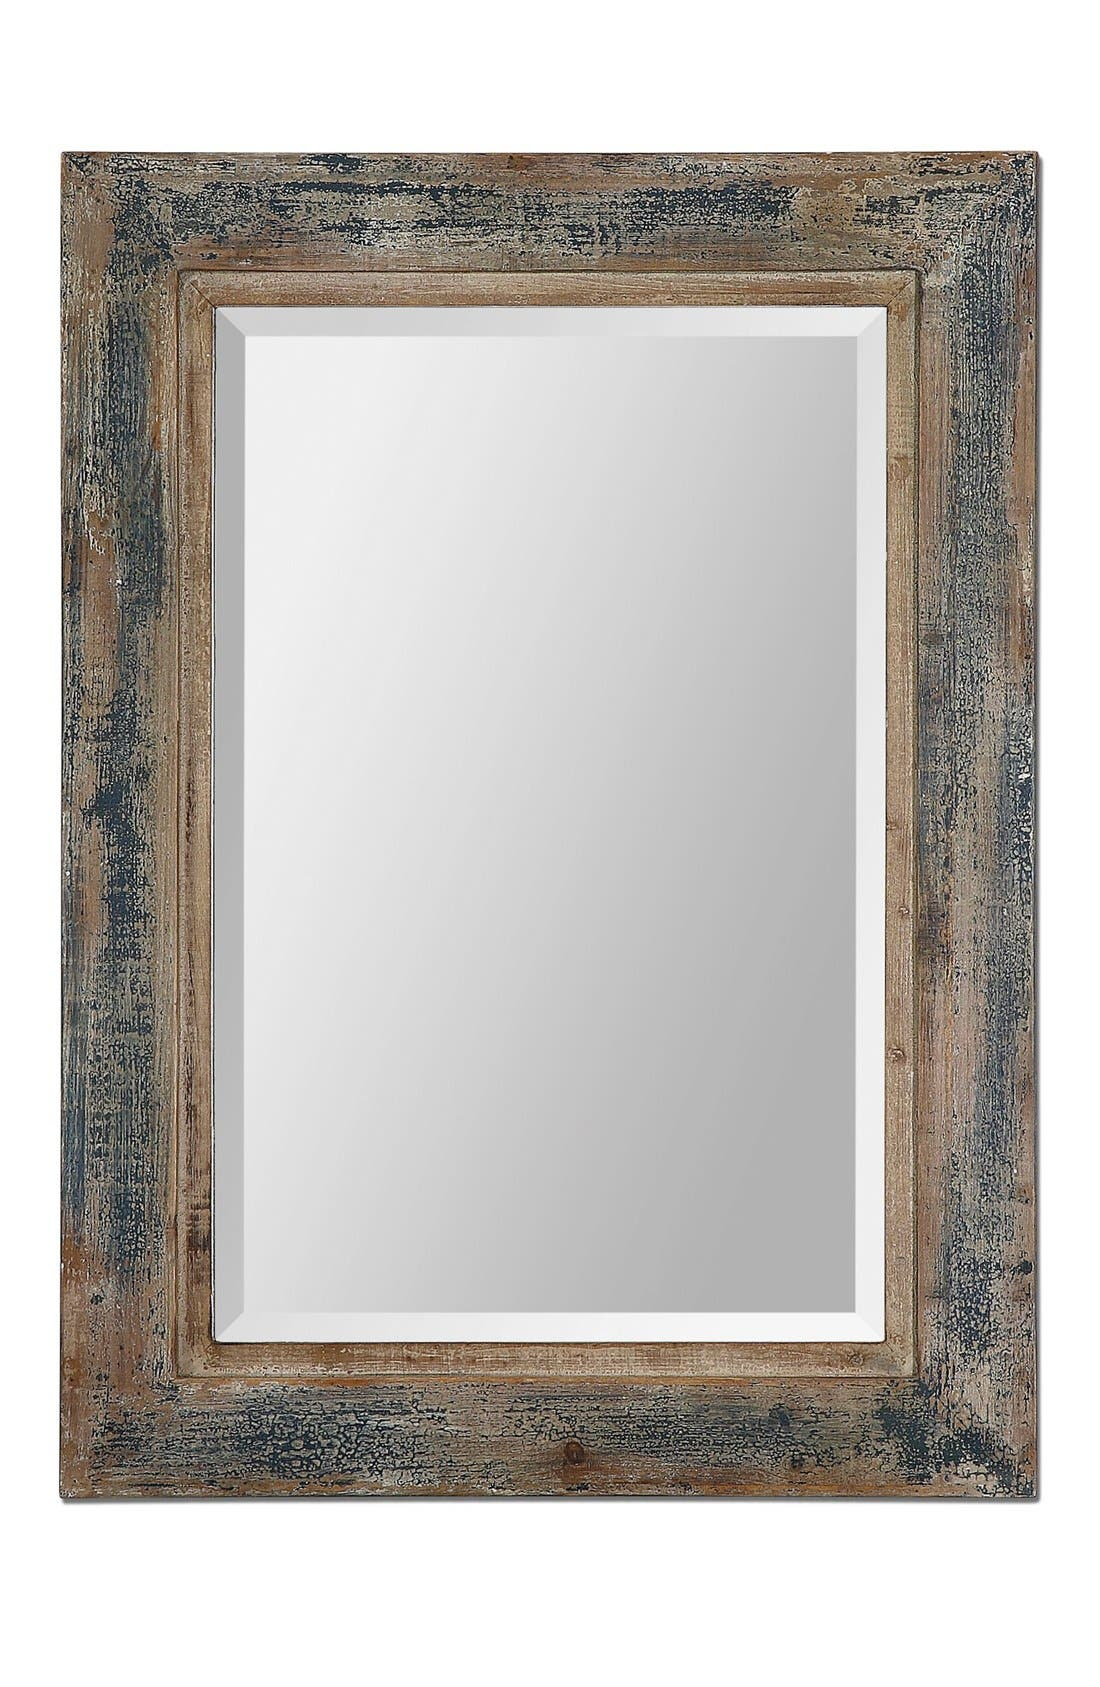 'Bozeman' Distressed Wooden Mirror,                         Main,                         color, 400